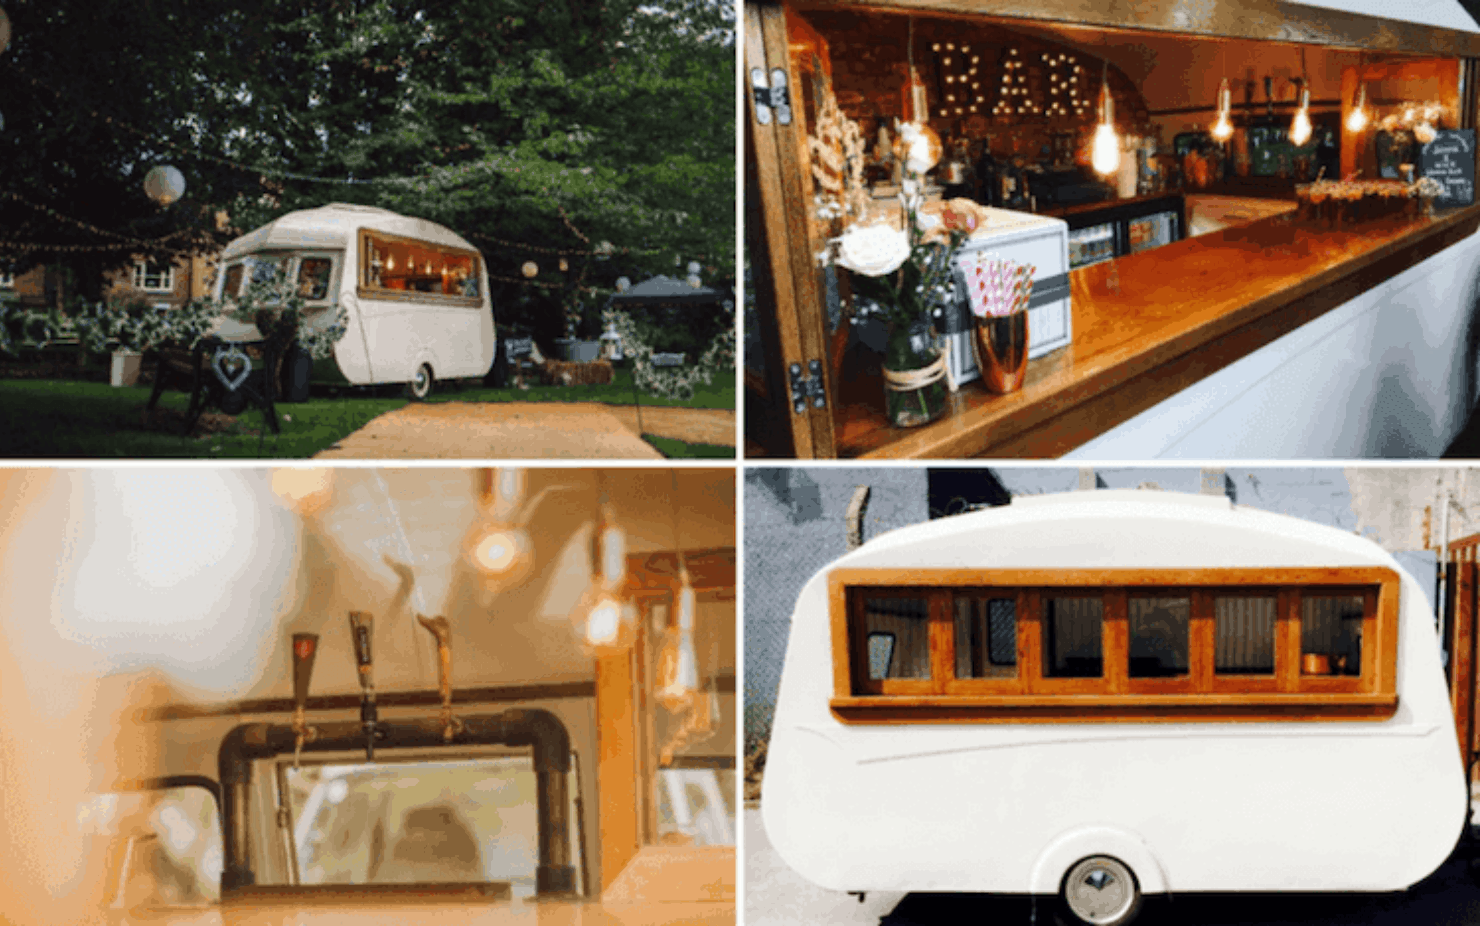 The Caravan Bar Company